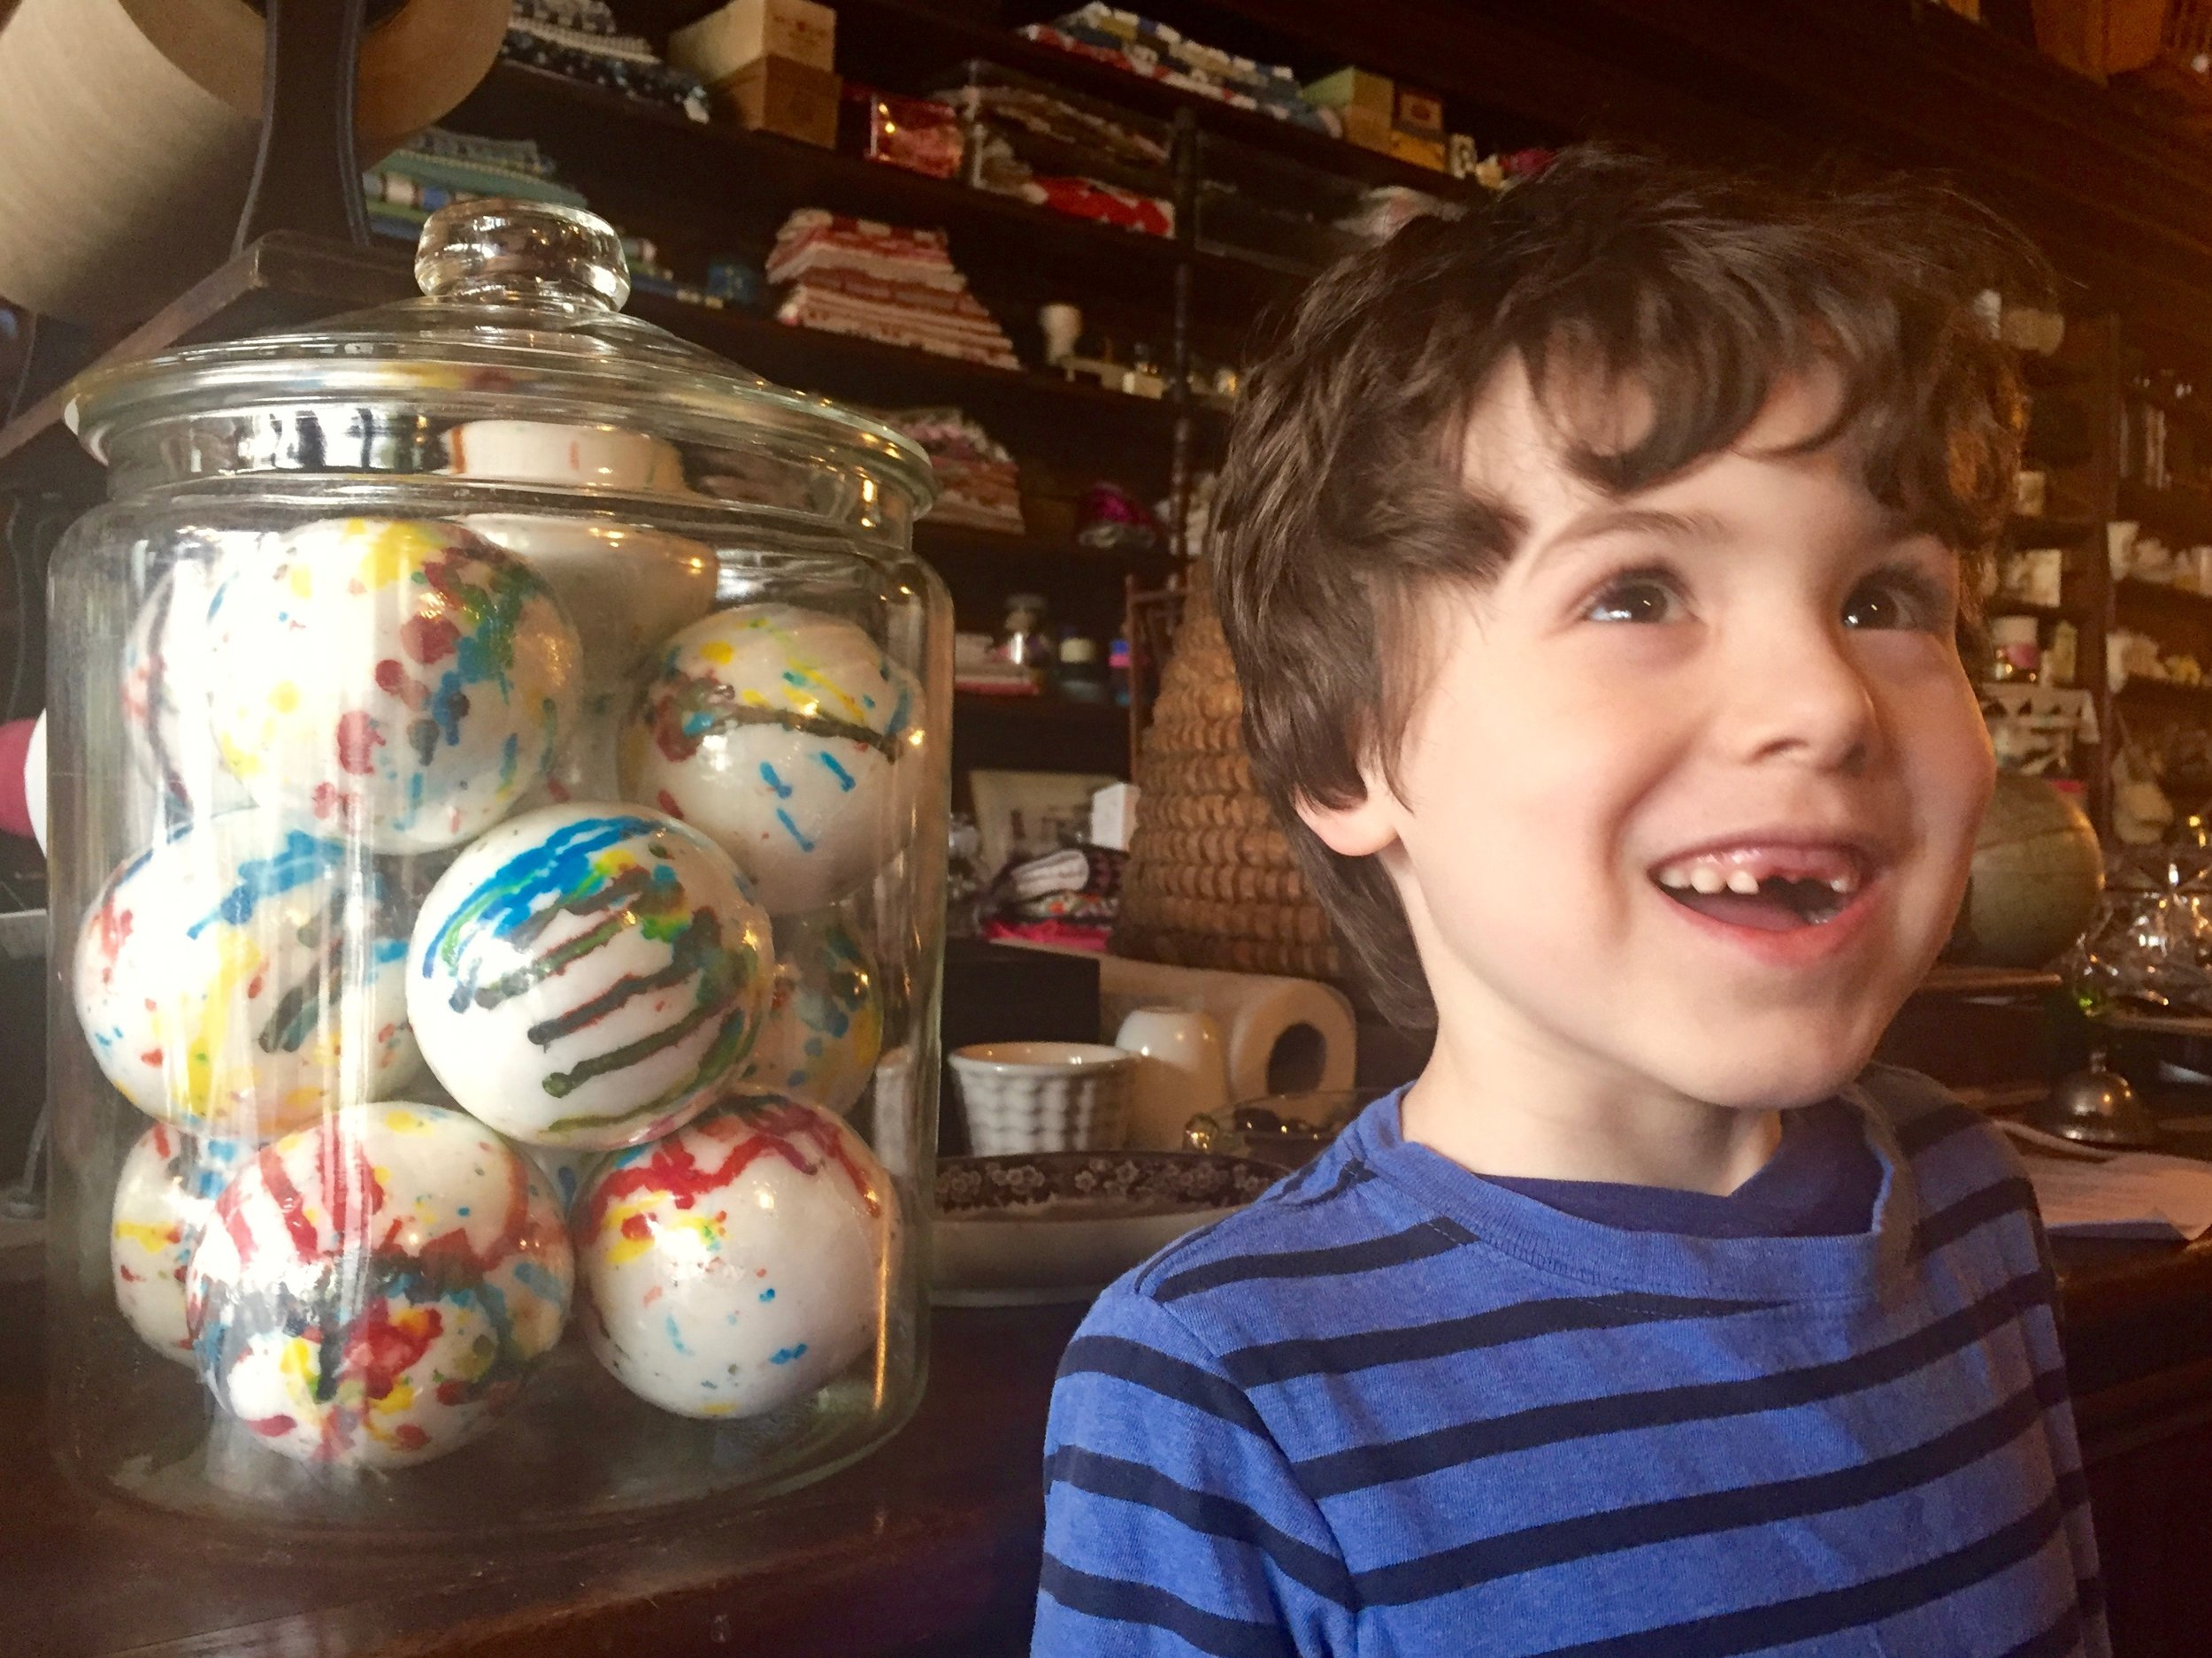 """Jawbreakers are the perfect treat if you aren't too attached to your teeth. Ha! Actually, Archer lost his teeth a couple of weeks ago and is just standing next to the jar for scale. In his words, the jawbreakers are """"ginormous."""""""